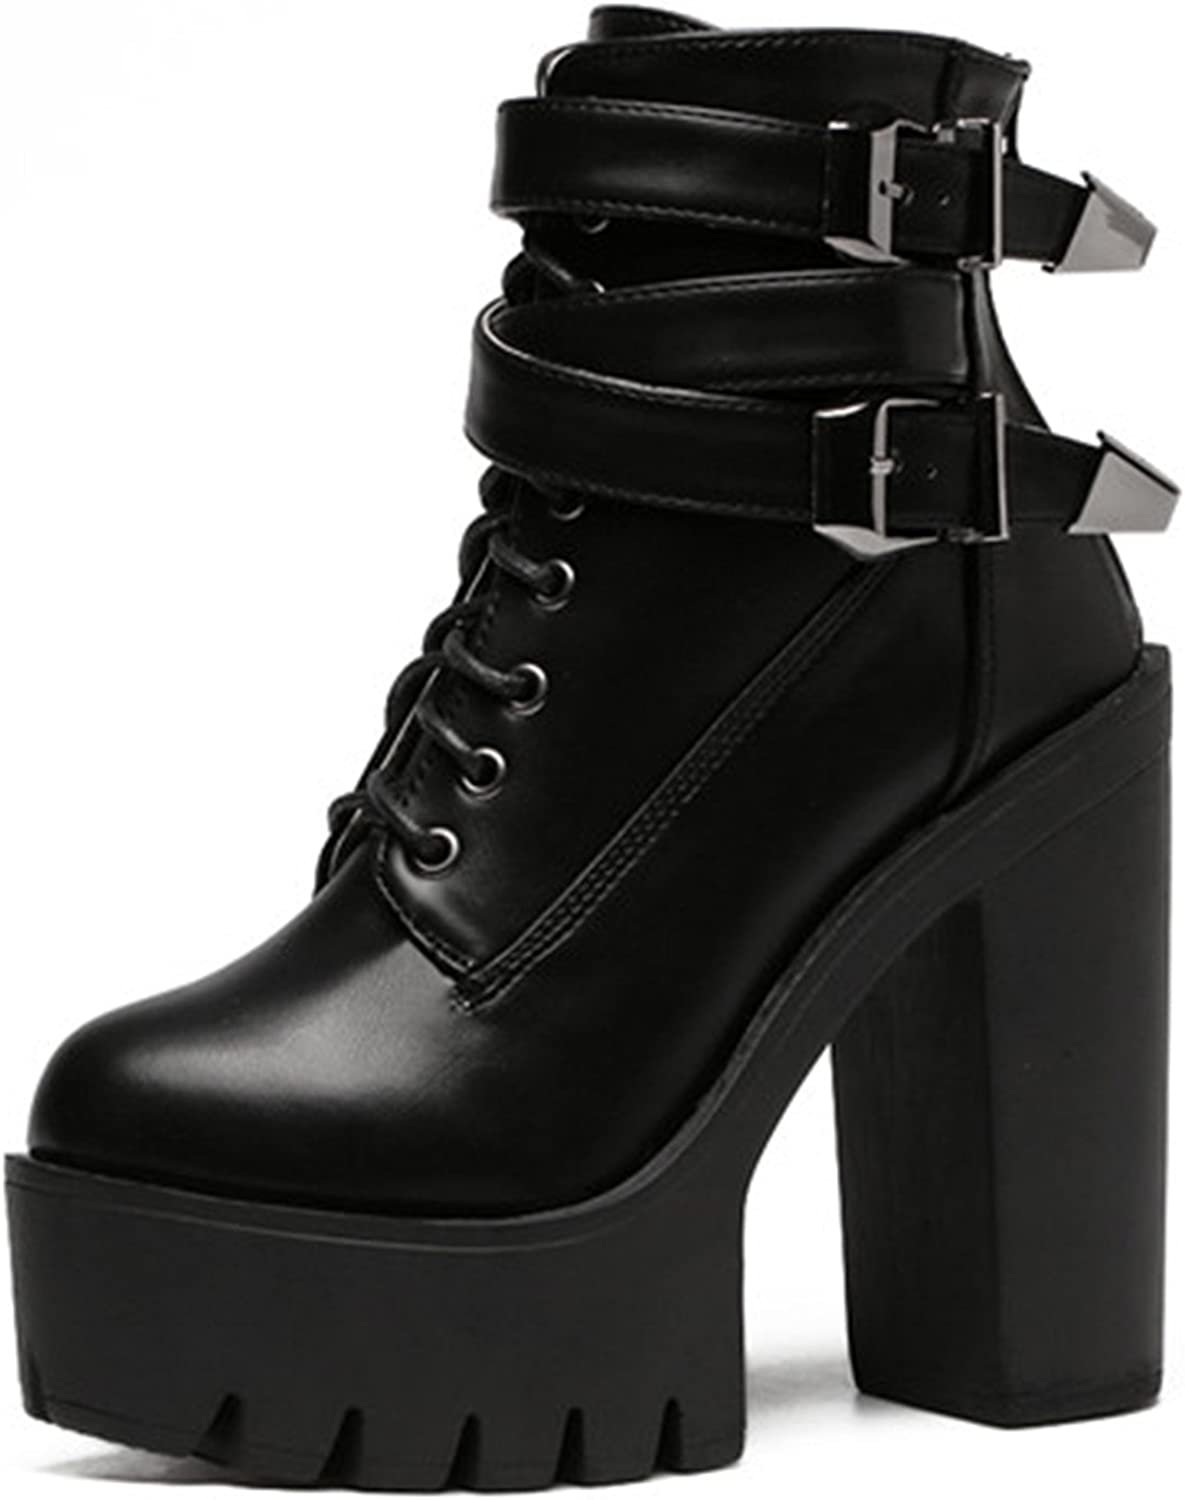 Taylor Heart Nice;Fashion New Spring Fashion Women Boots High Heels Platform Buckle Lace Up Leather Short Booties Black Ladies shoes